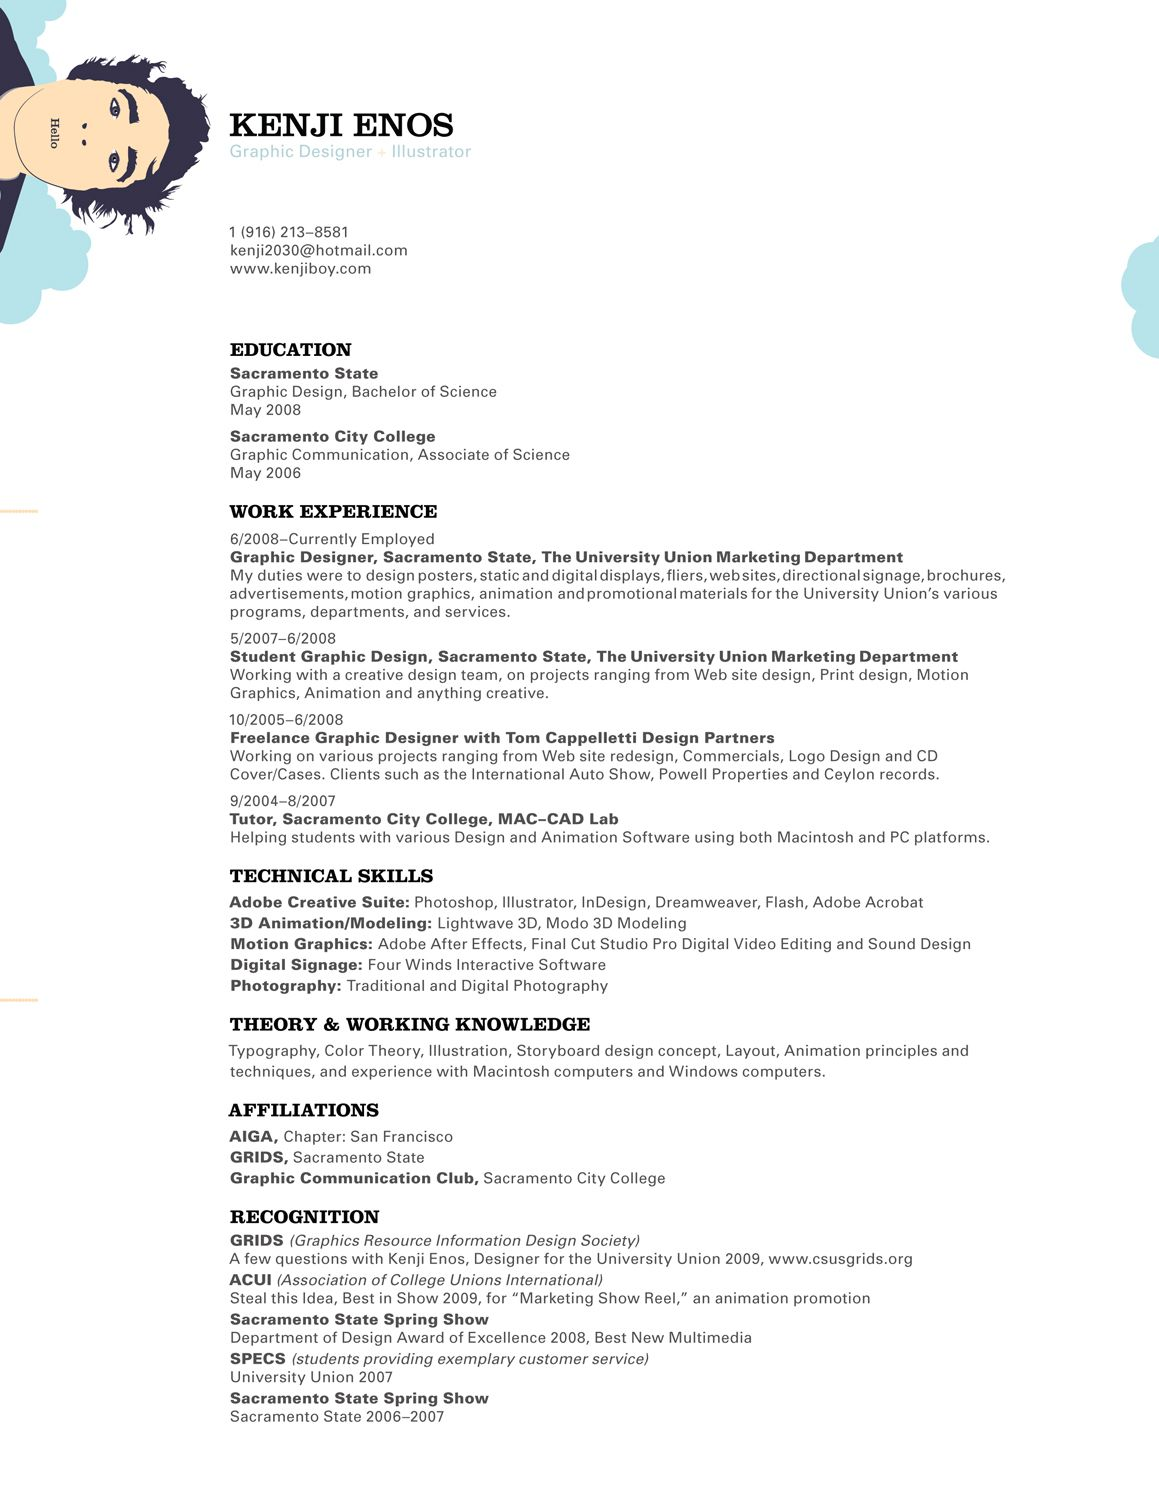 kenjiboy resume by kenji2030 deviantart com on  deviantart